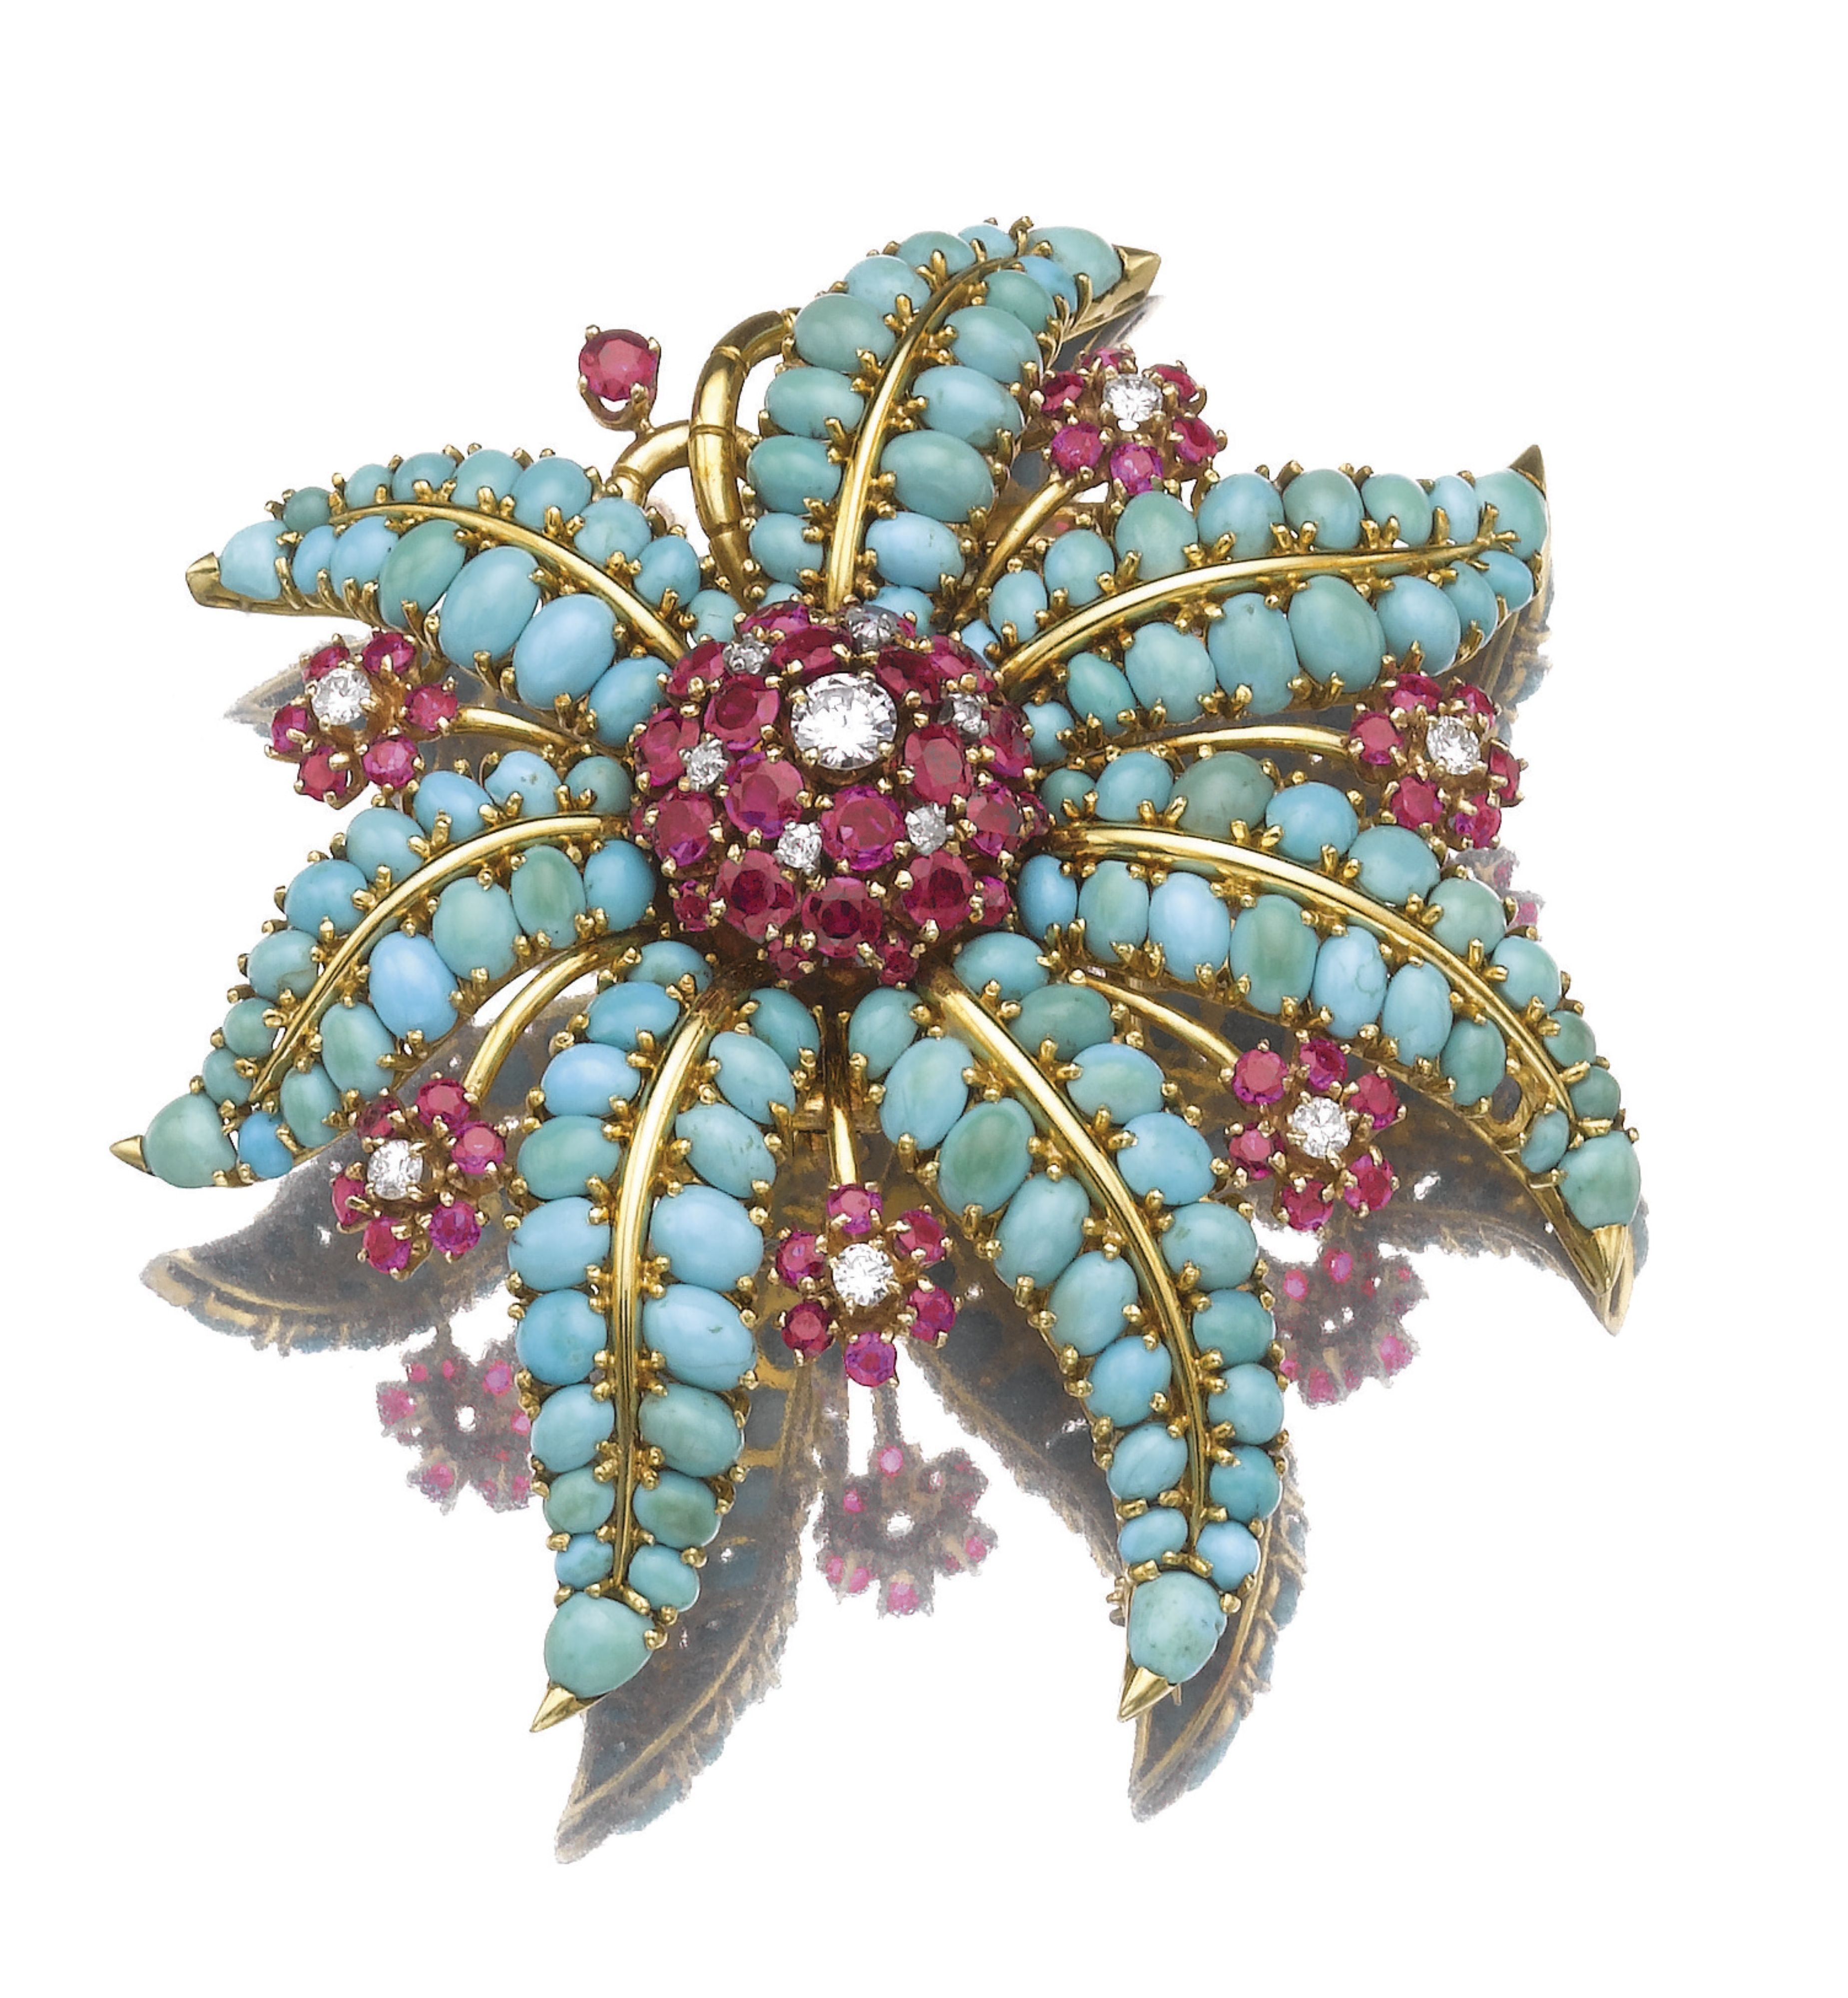 John Rubel, 1940s - turquoise, ruby and diamond brooch